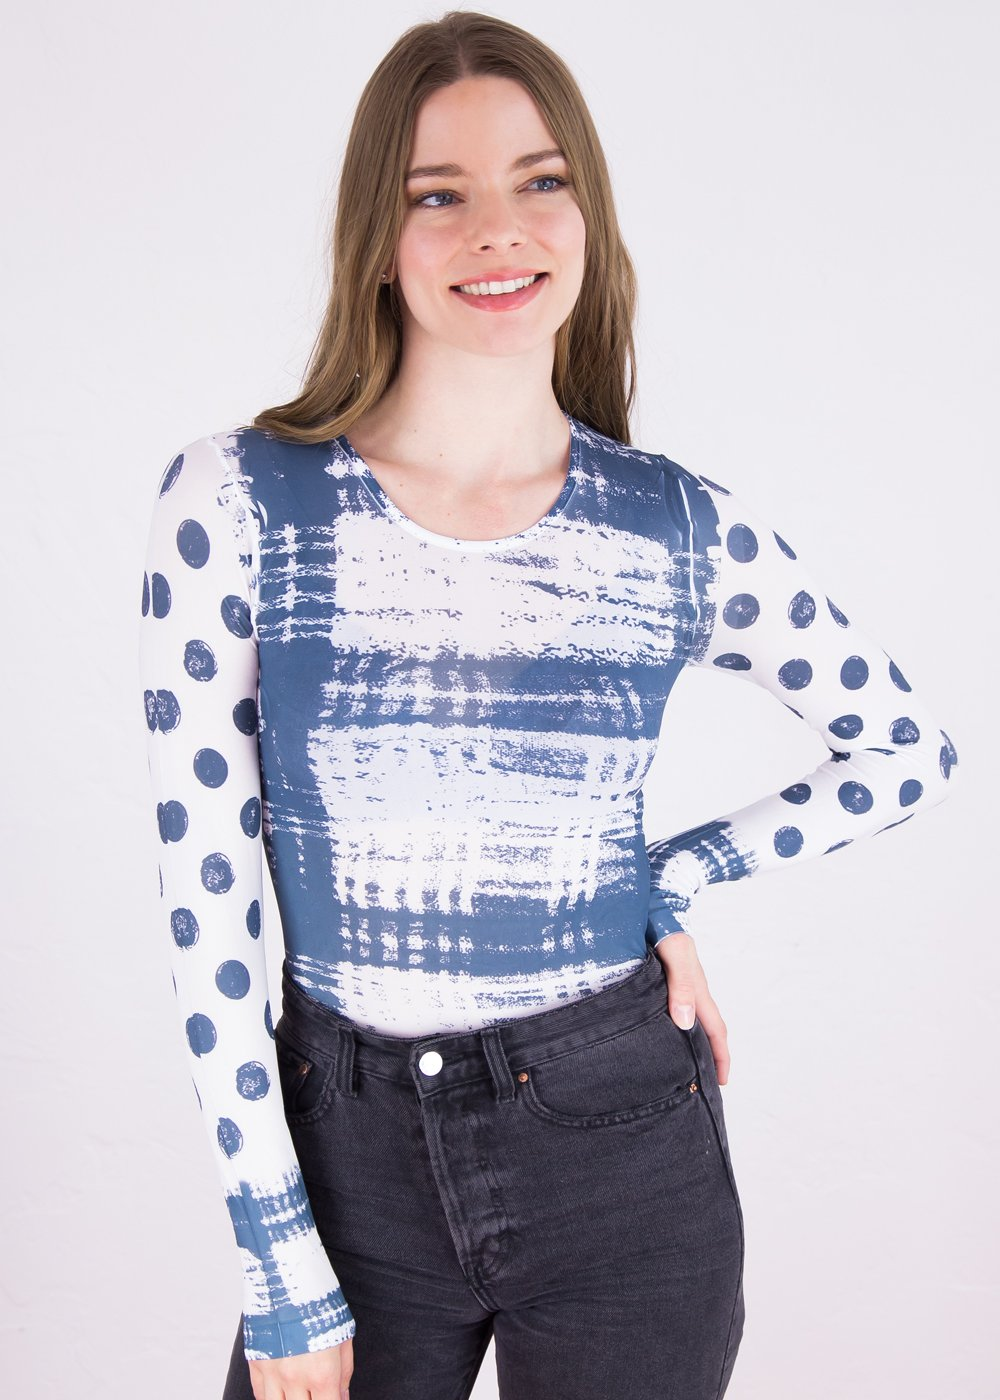 Grunge Collage Crew Neck Top- New Color!